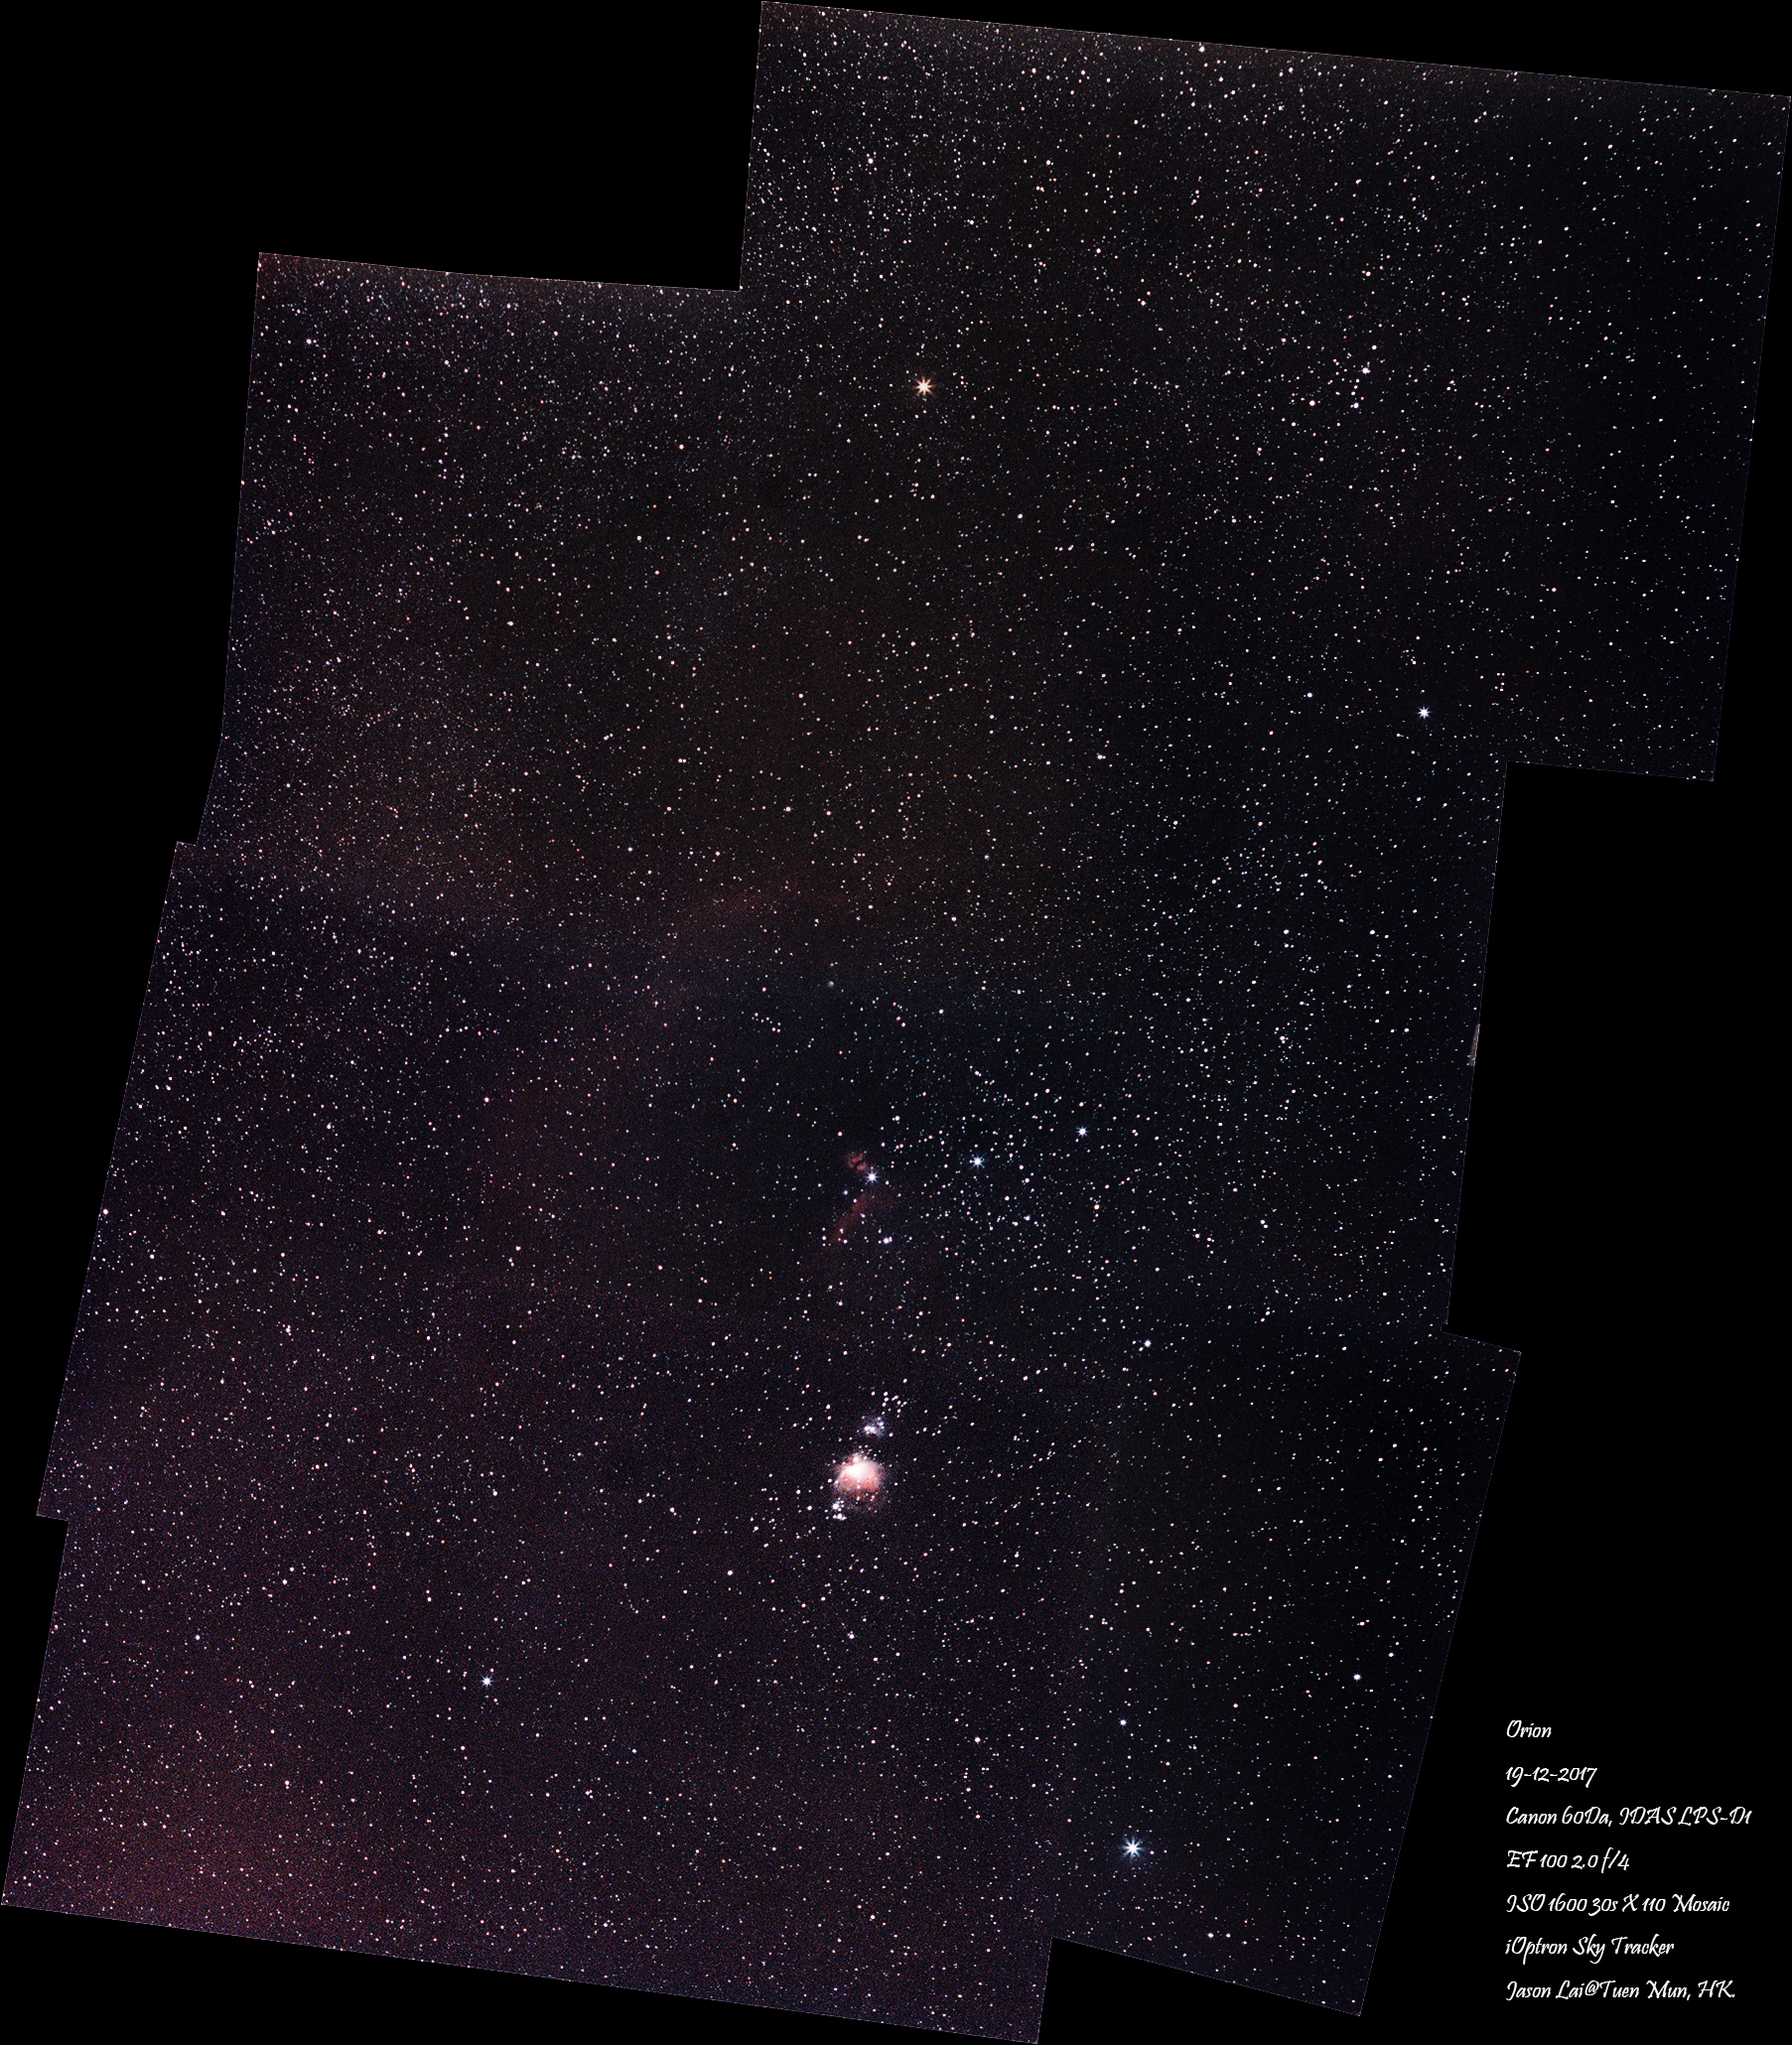 19122017orion_a_DBE_stitch2.jpg